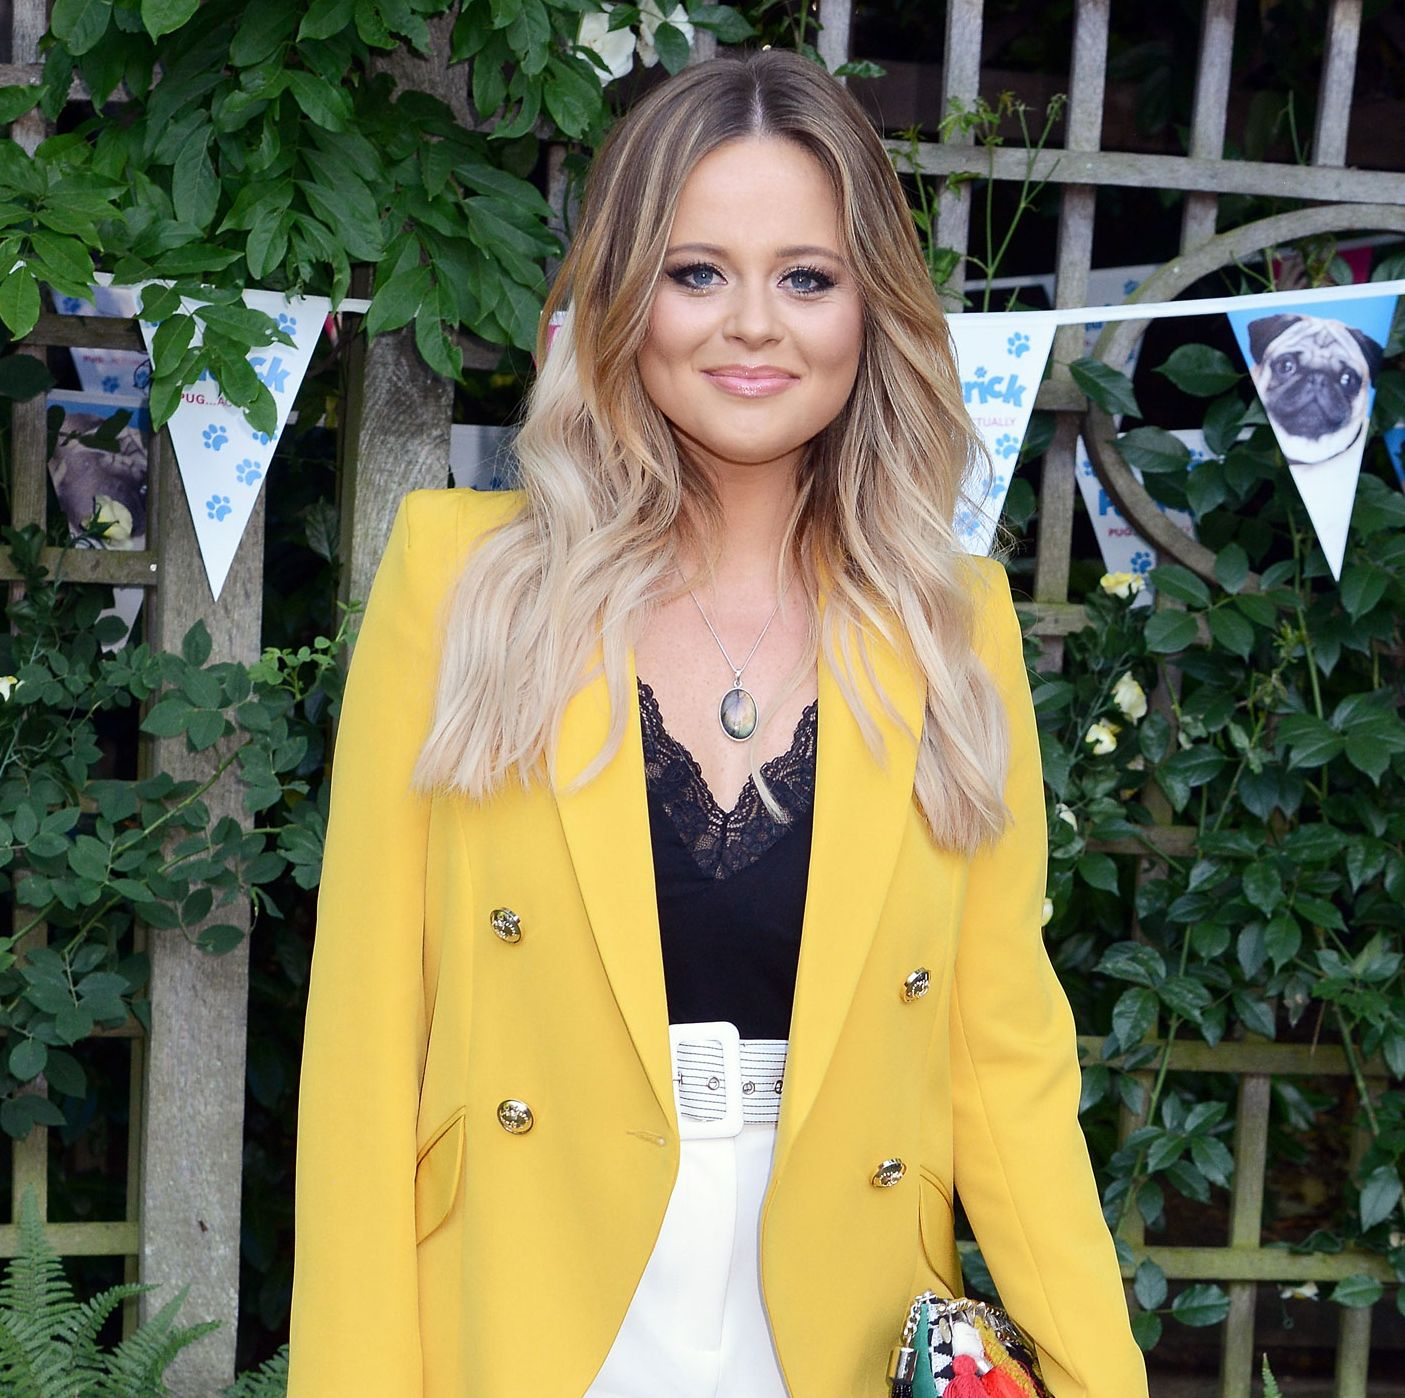 Exclusive: I'm a Celebrity's Emily Atack reveals her method for coping with trolls